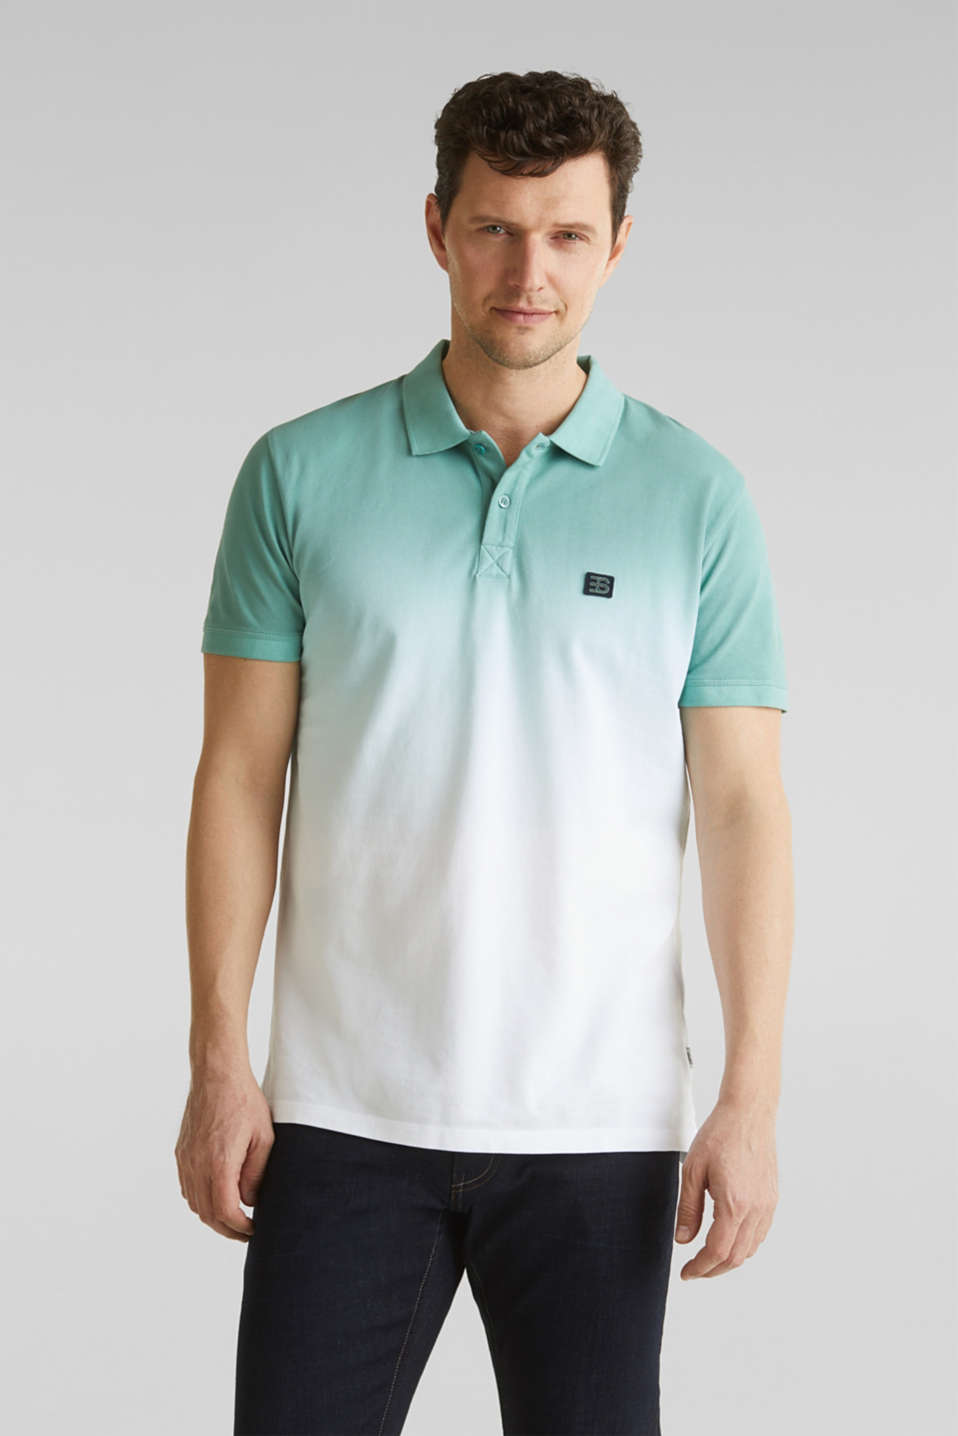 Esprit - Polo de piqué con degradación de color